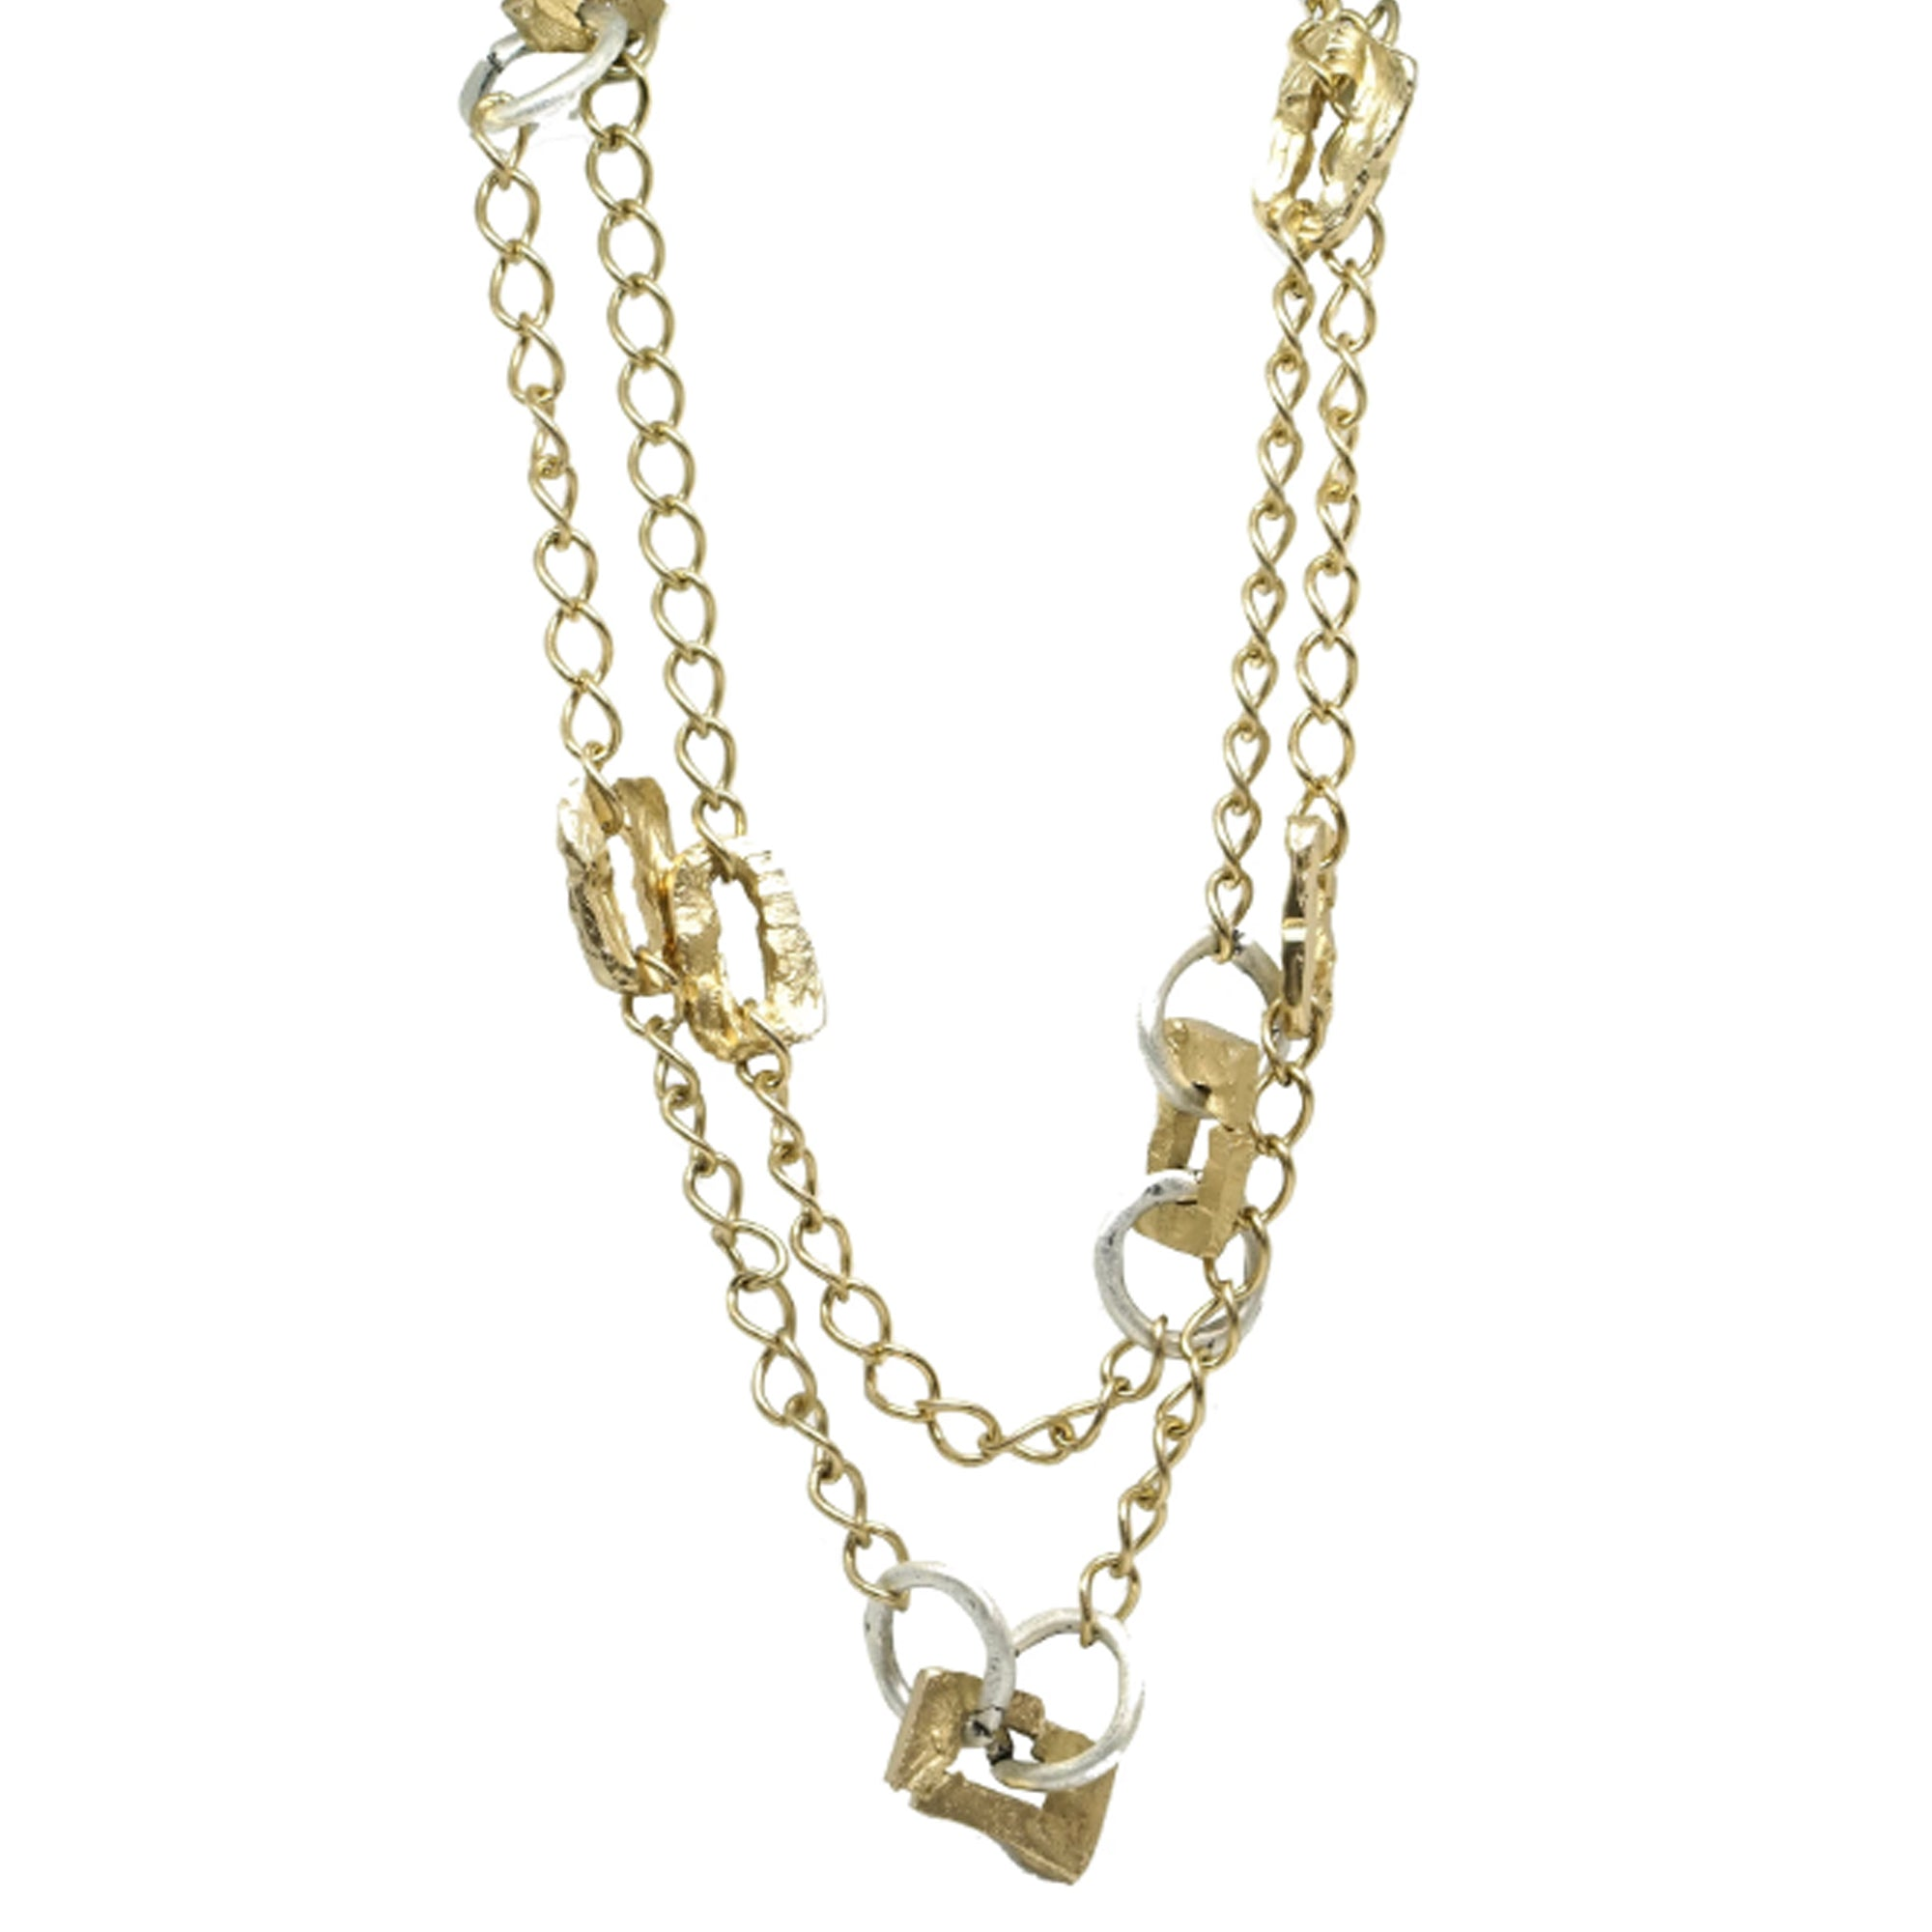 RECTANGULAR LINK AND CIRCLE STATION NECKLACE